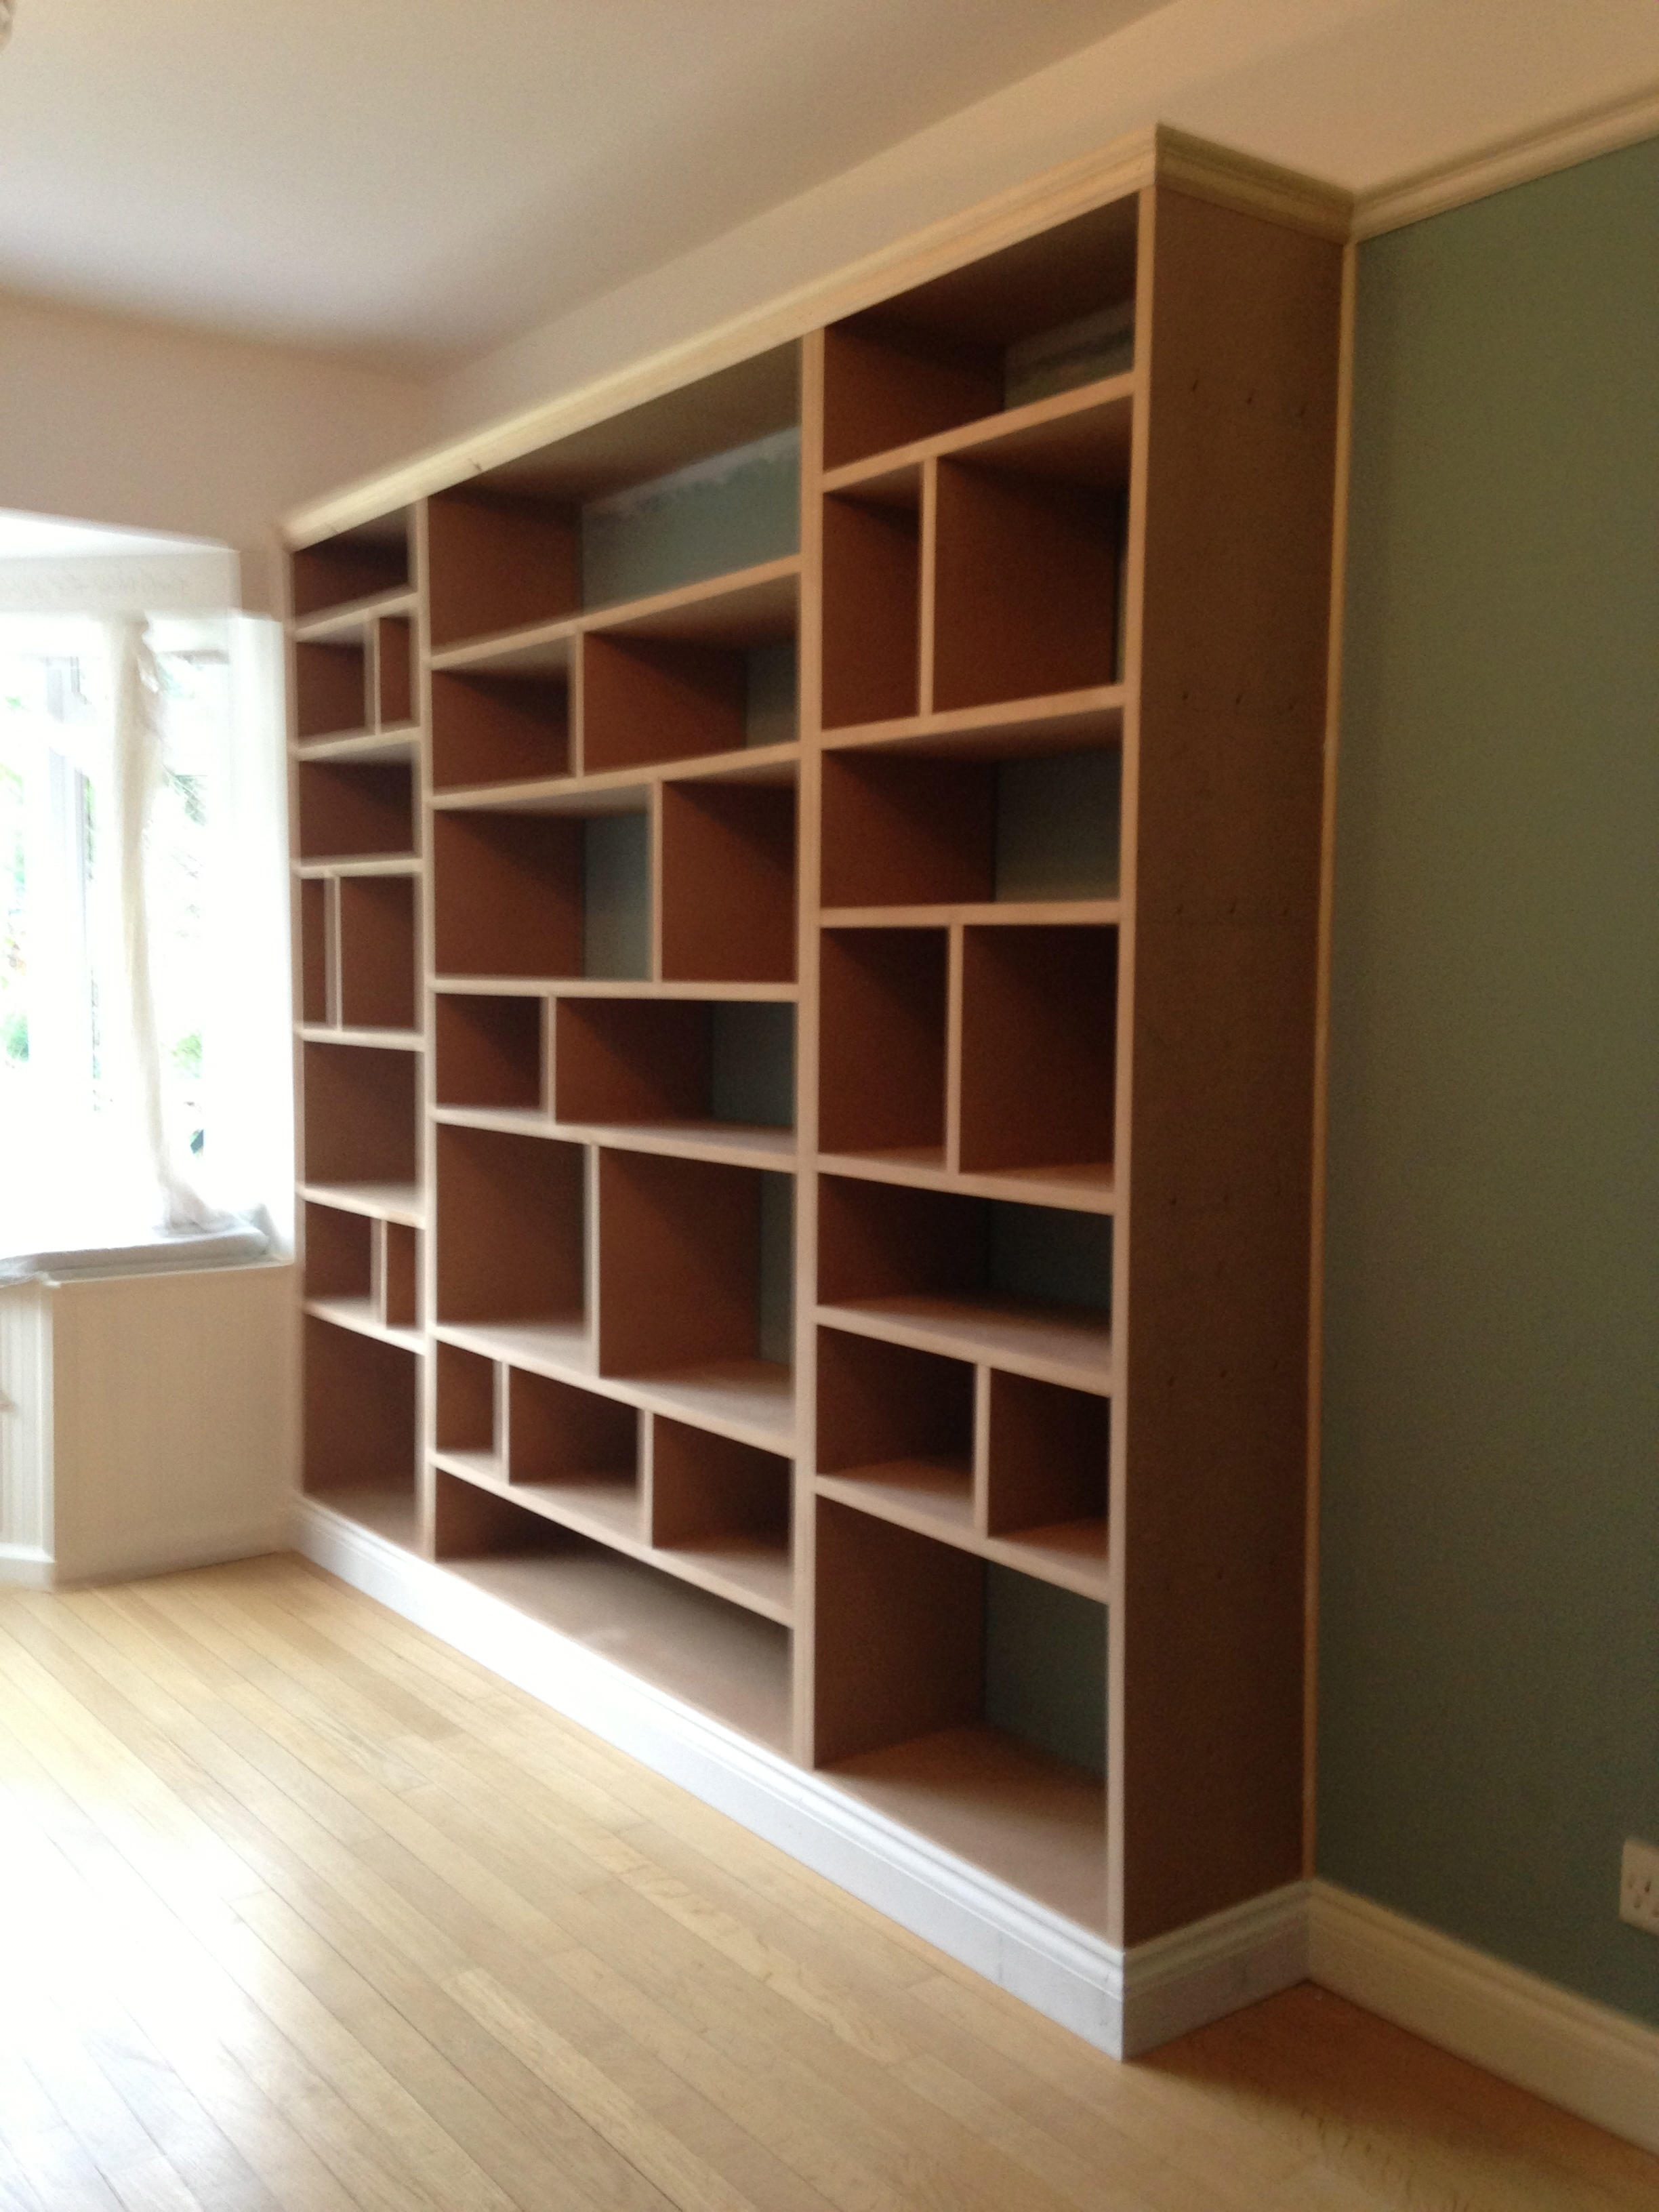 Favorite Fitted Shelves And Cupboards Throughout Fitted Shelving, Cupboards And Flooring – P D Carpentry & Building (View 5 of 15)